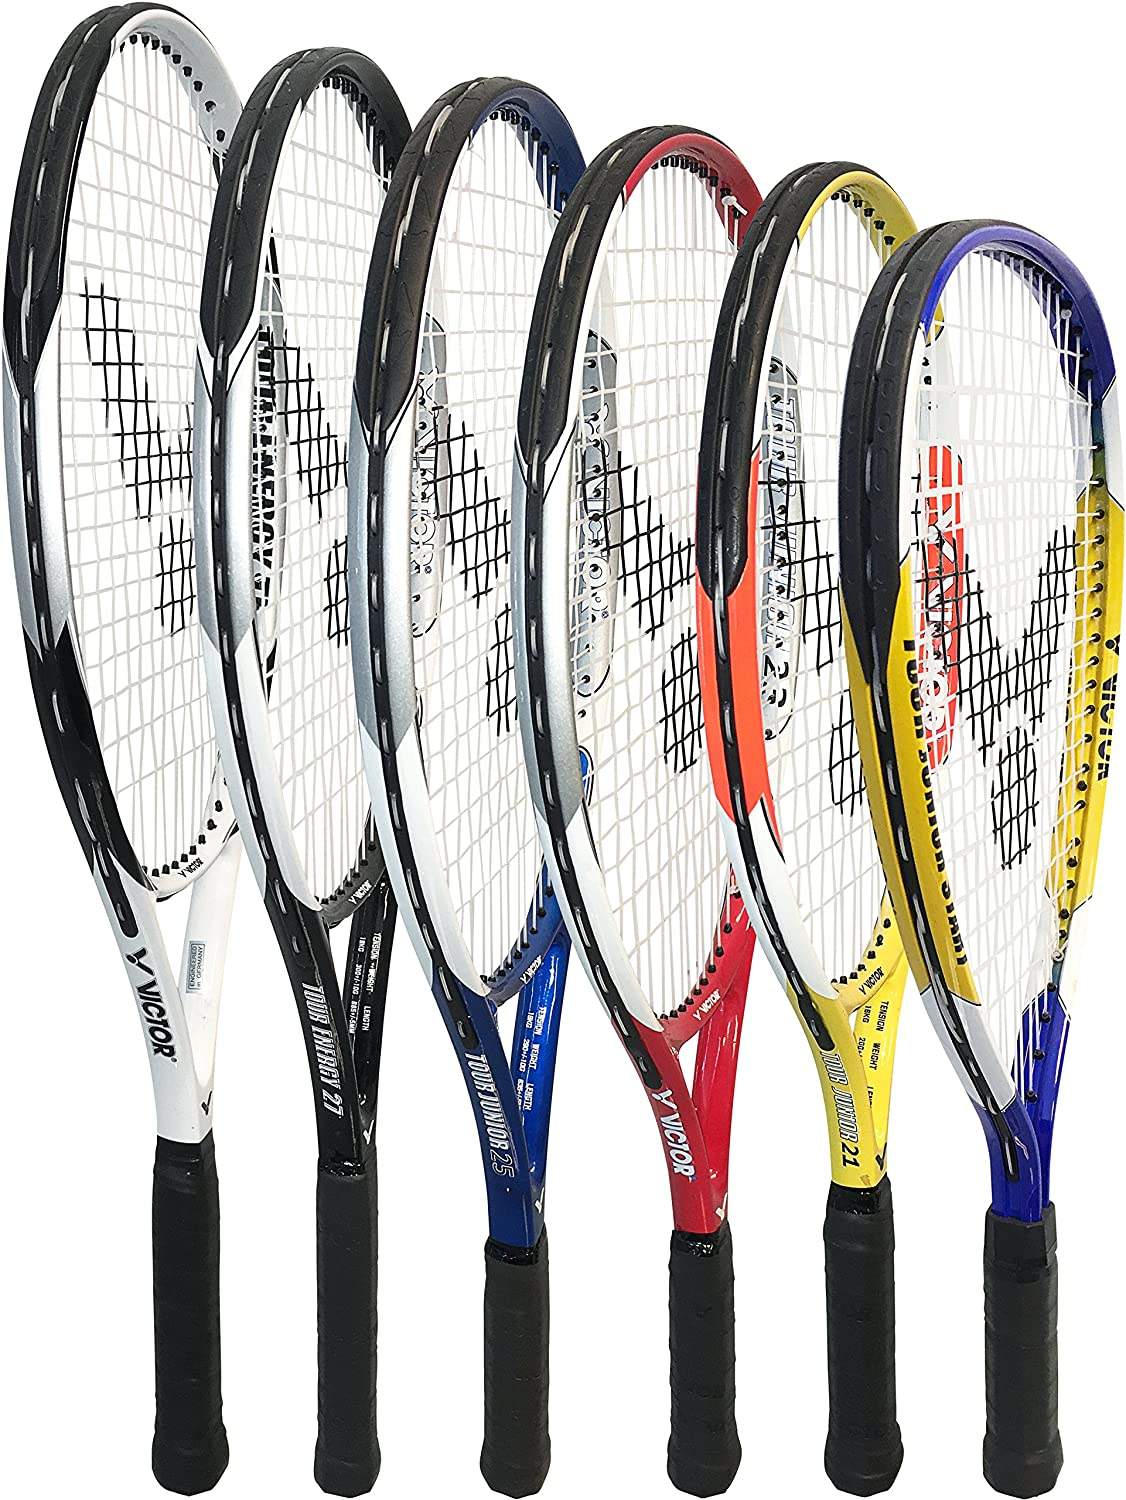 Victor Tennis Tour Energy 23 Tennis Energy Racquet - Red/Black Racquet B00180UG50, Mt.石井スポーツ:7f563fa3 --- cgt-tbc.fr